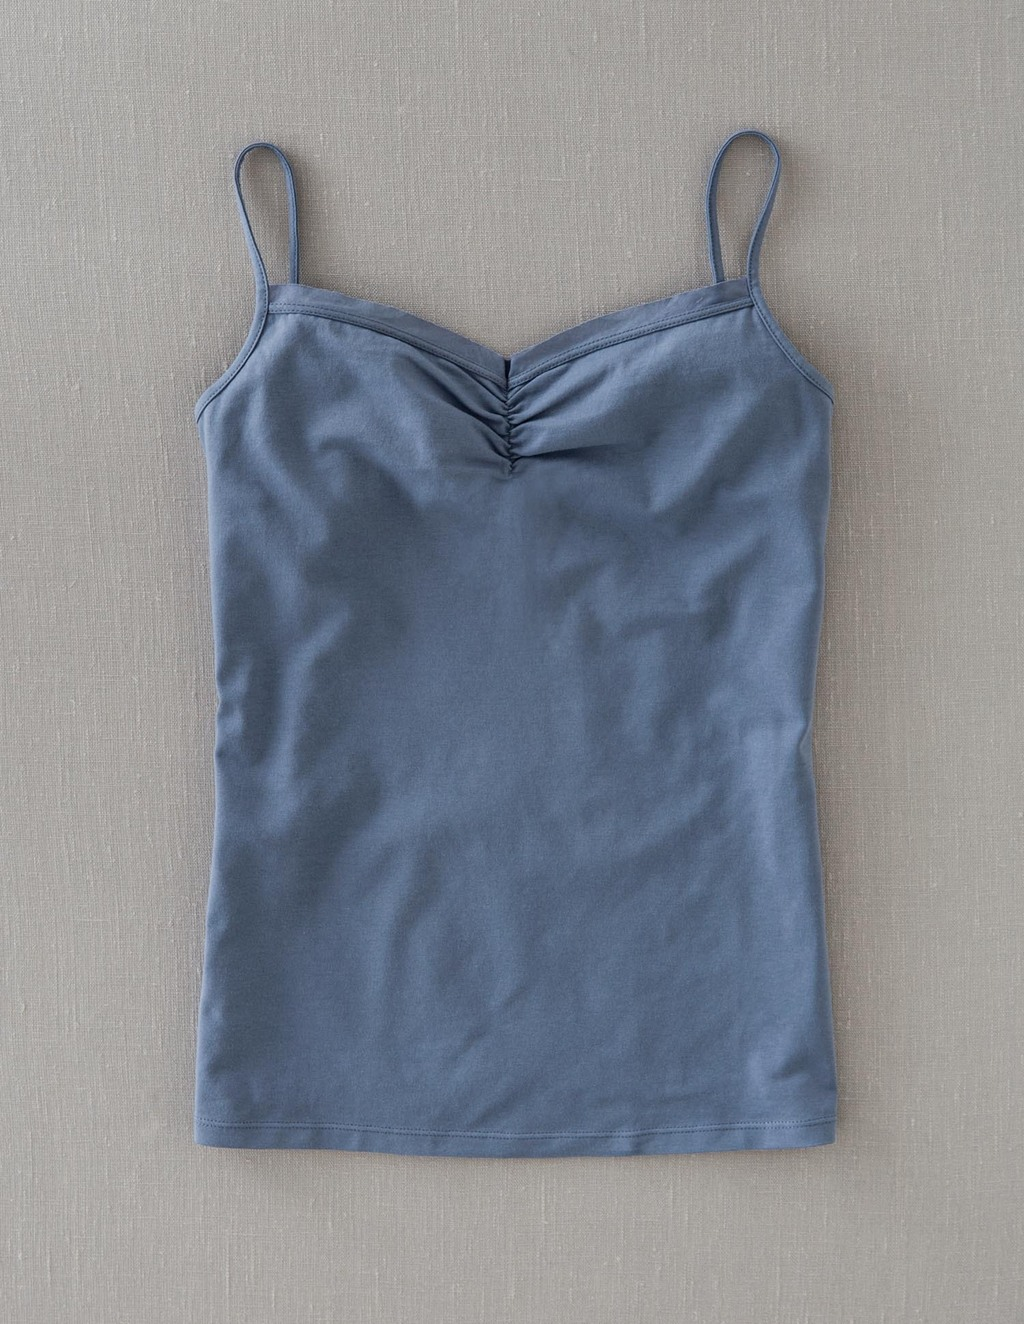 Gathered Cami - sleeve style: spaghetti straps; pattern: plain; style: camisole; neckline: sweetheart; bust detail: subtle bust detail; predominant colour: denim; occasions: casual; length: standard; fibres: cotton - stretch; fit: tight; sleeve length: sleeveless; texture group: jersey - clingy; pattern type: fabric; season: a/w 2013; wardrobe: highlight